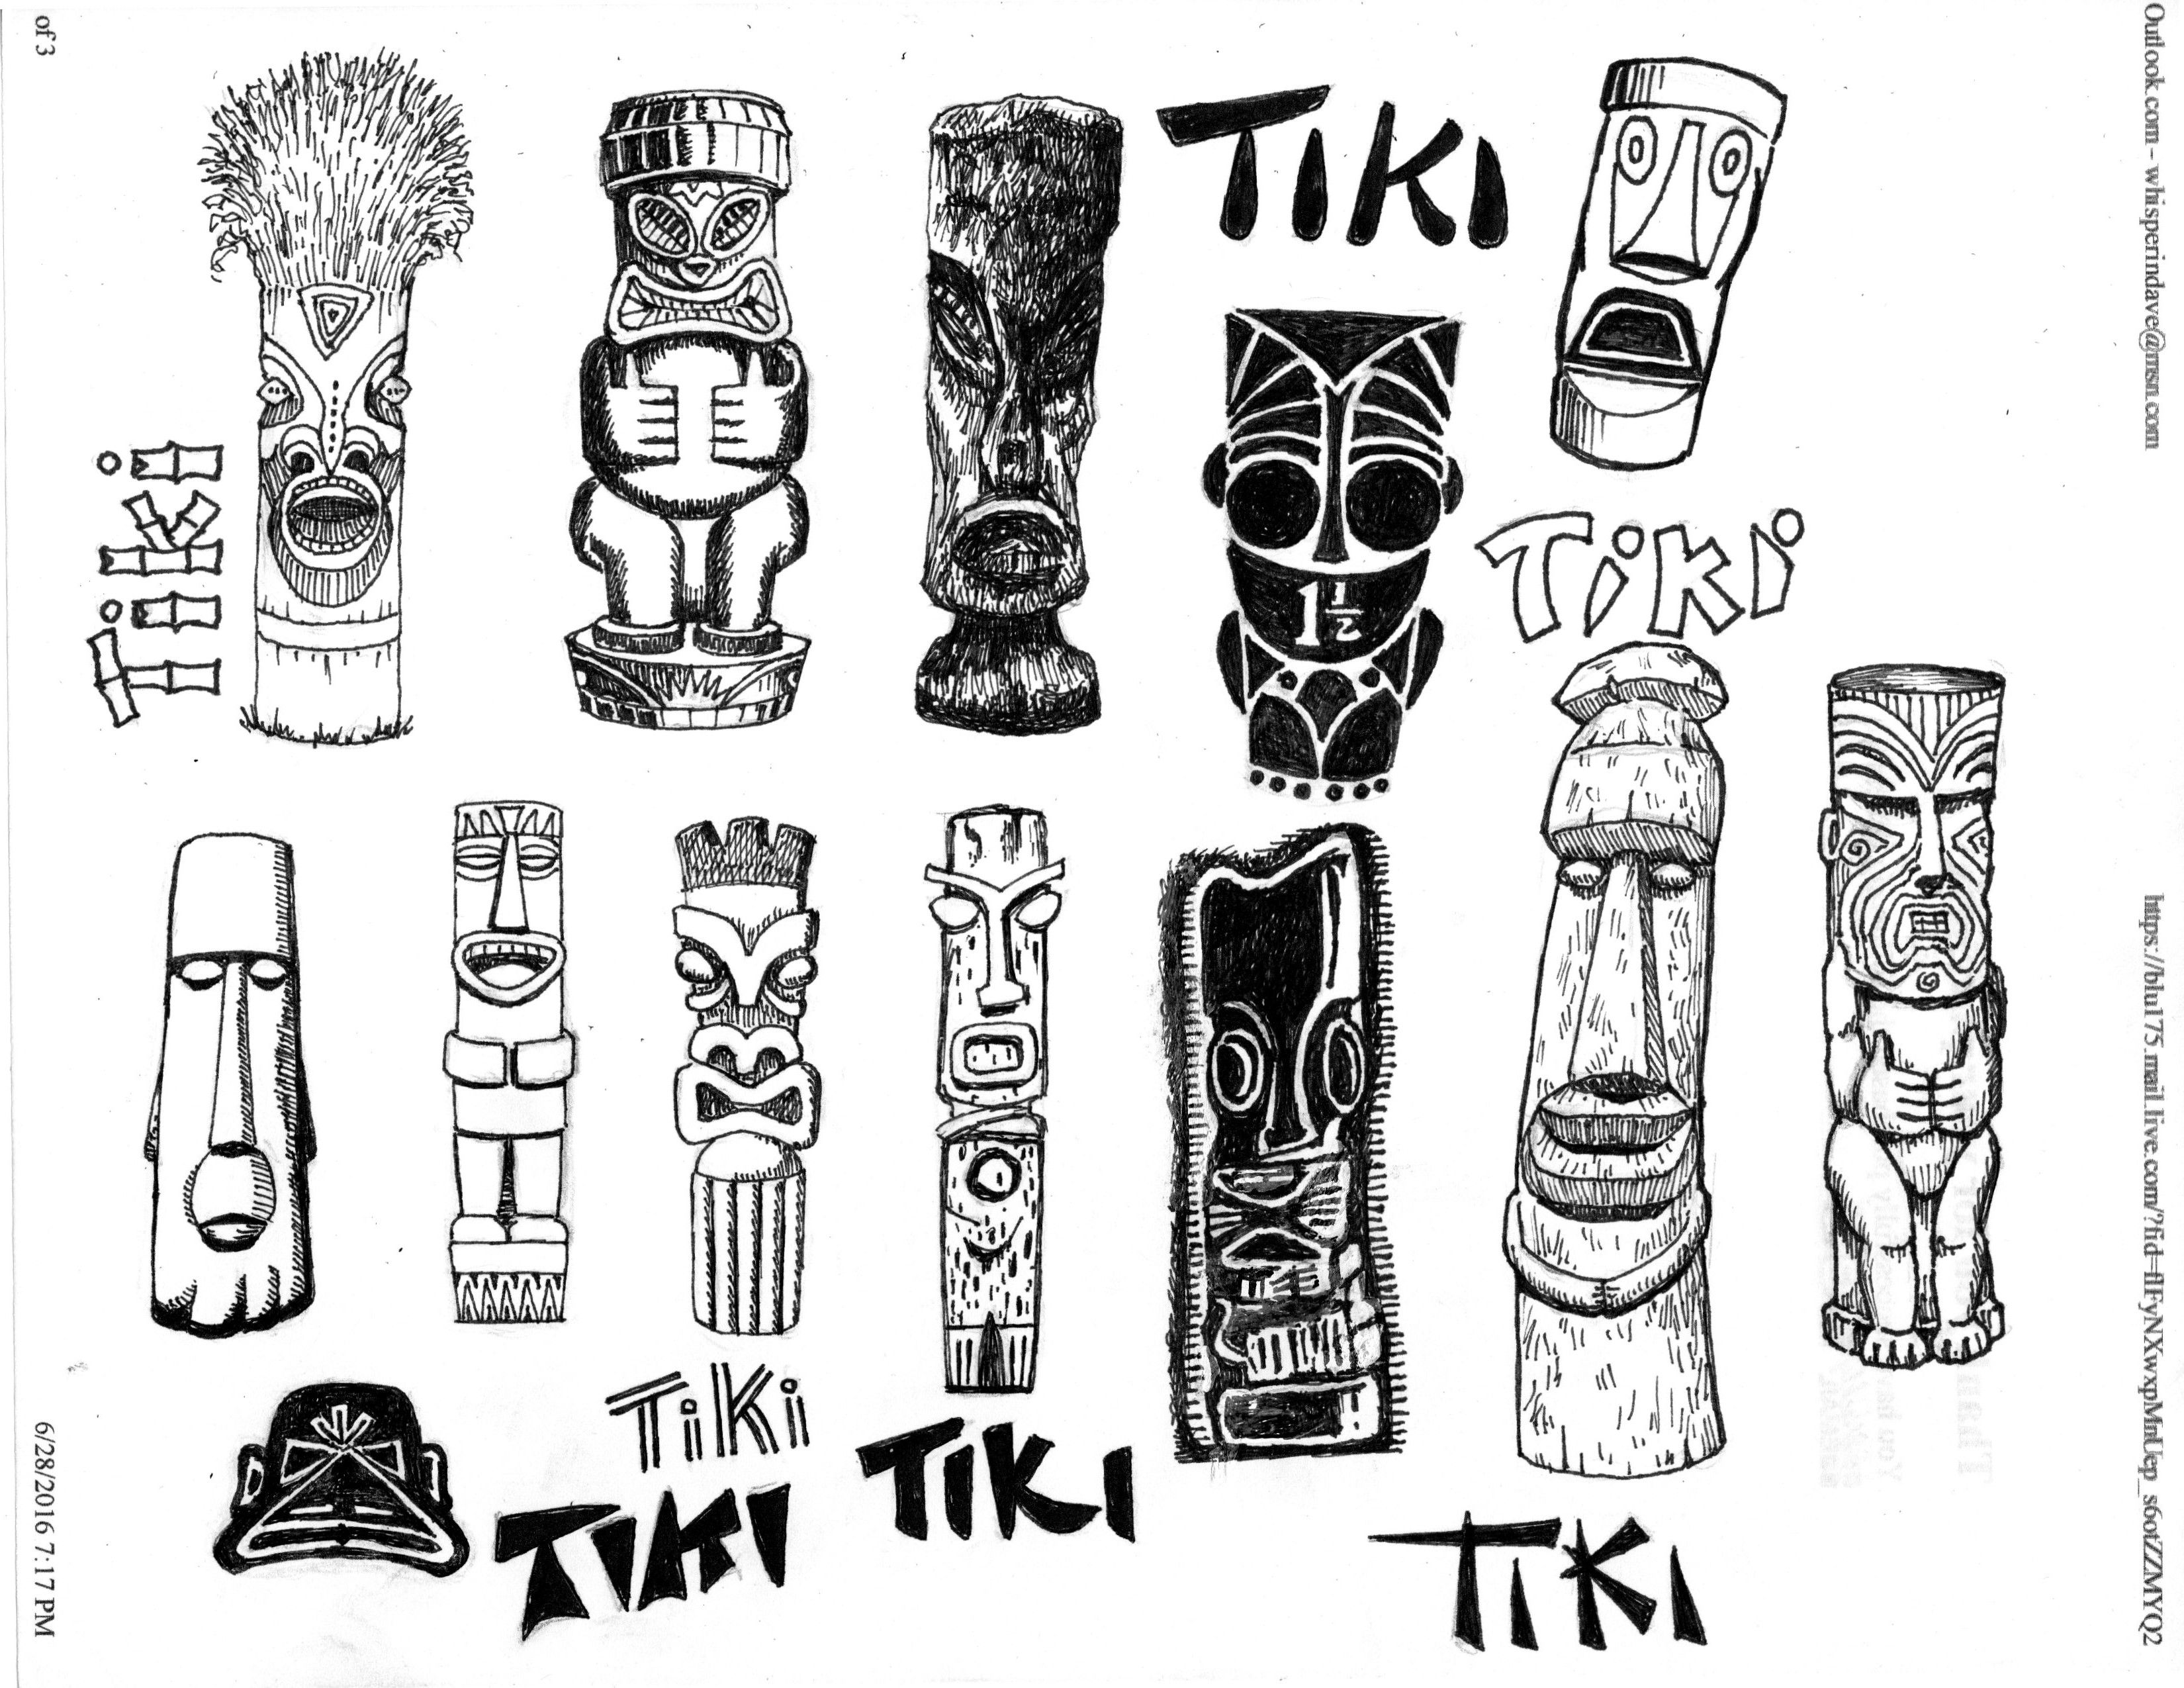 Tiki Clip Art 3 By David St Albans For Free Use